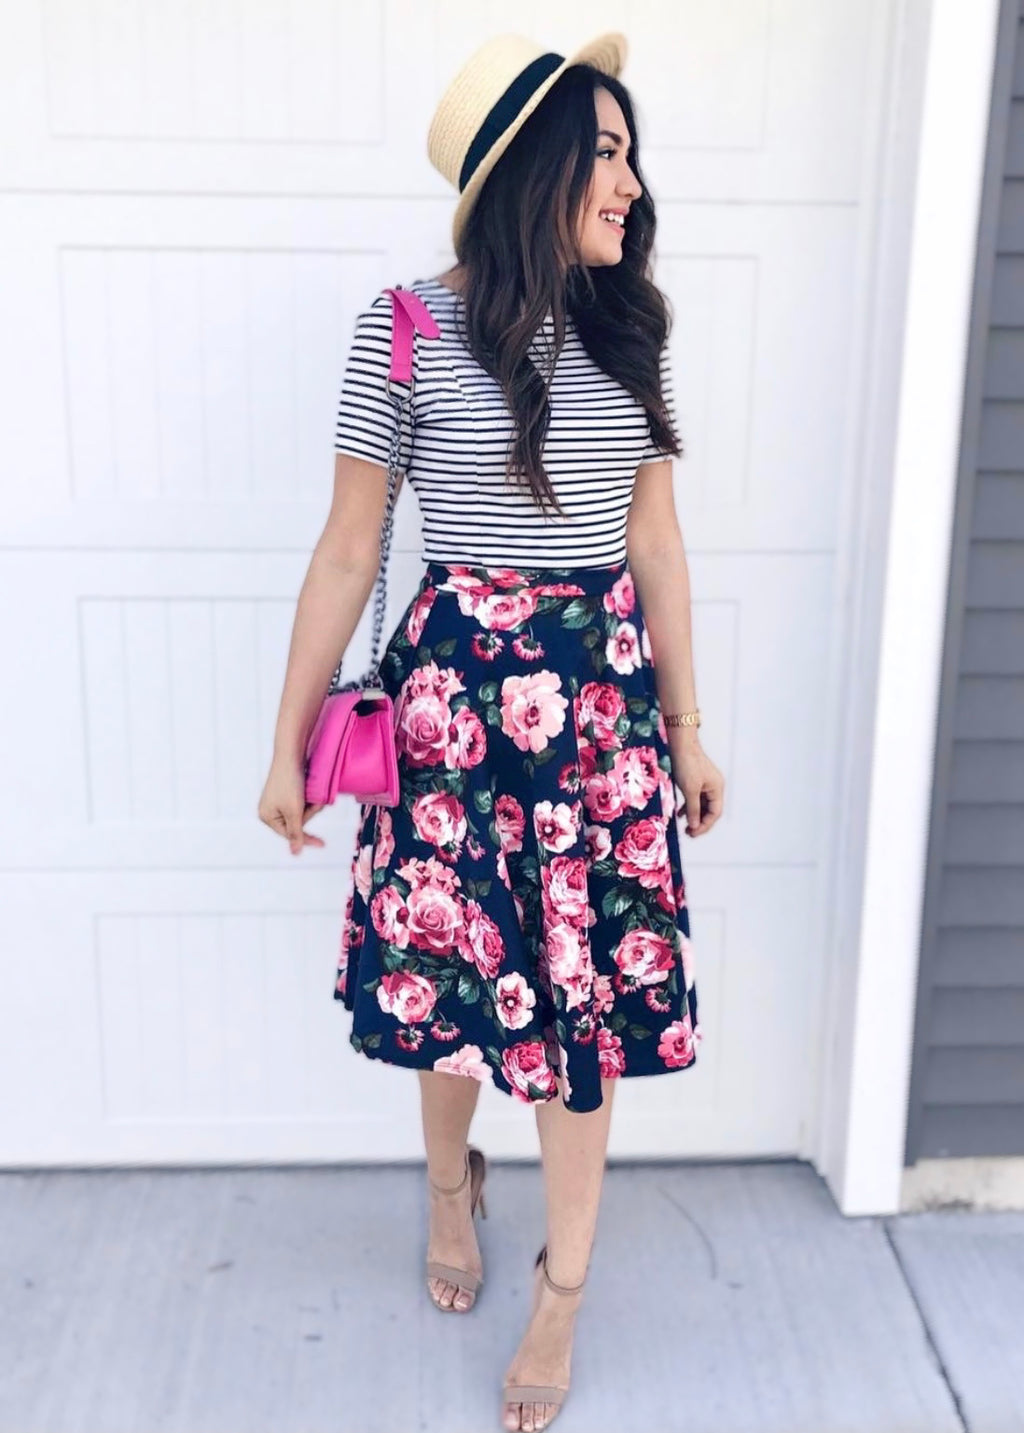 The Priscilla Floral Skirt - The Darling Style